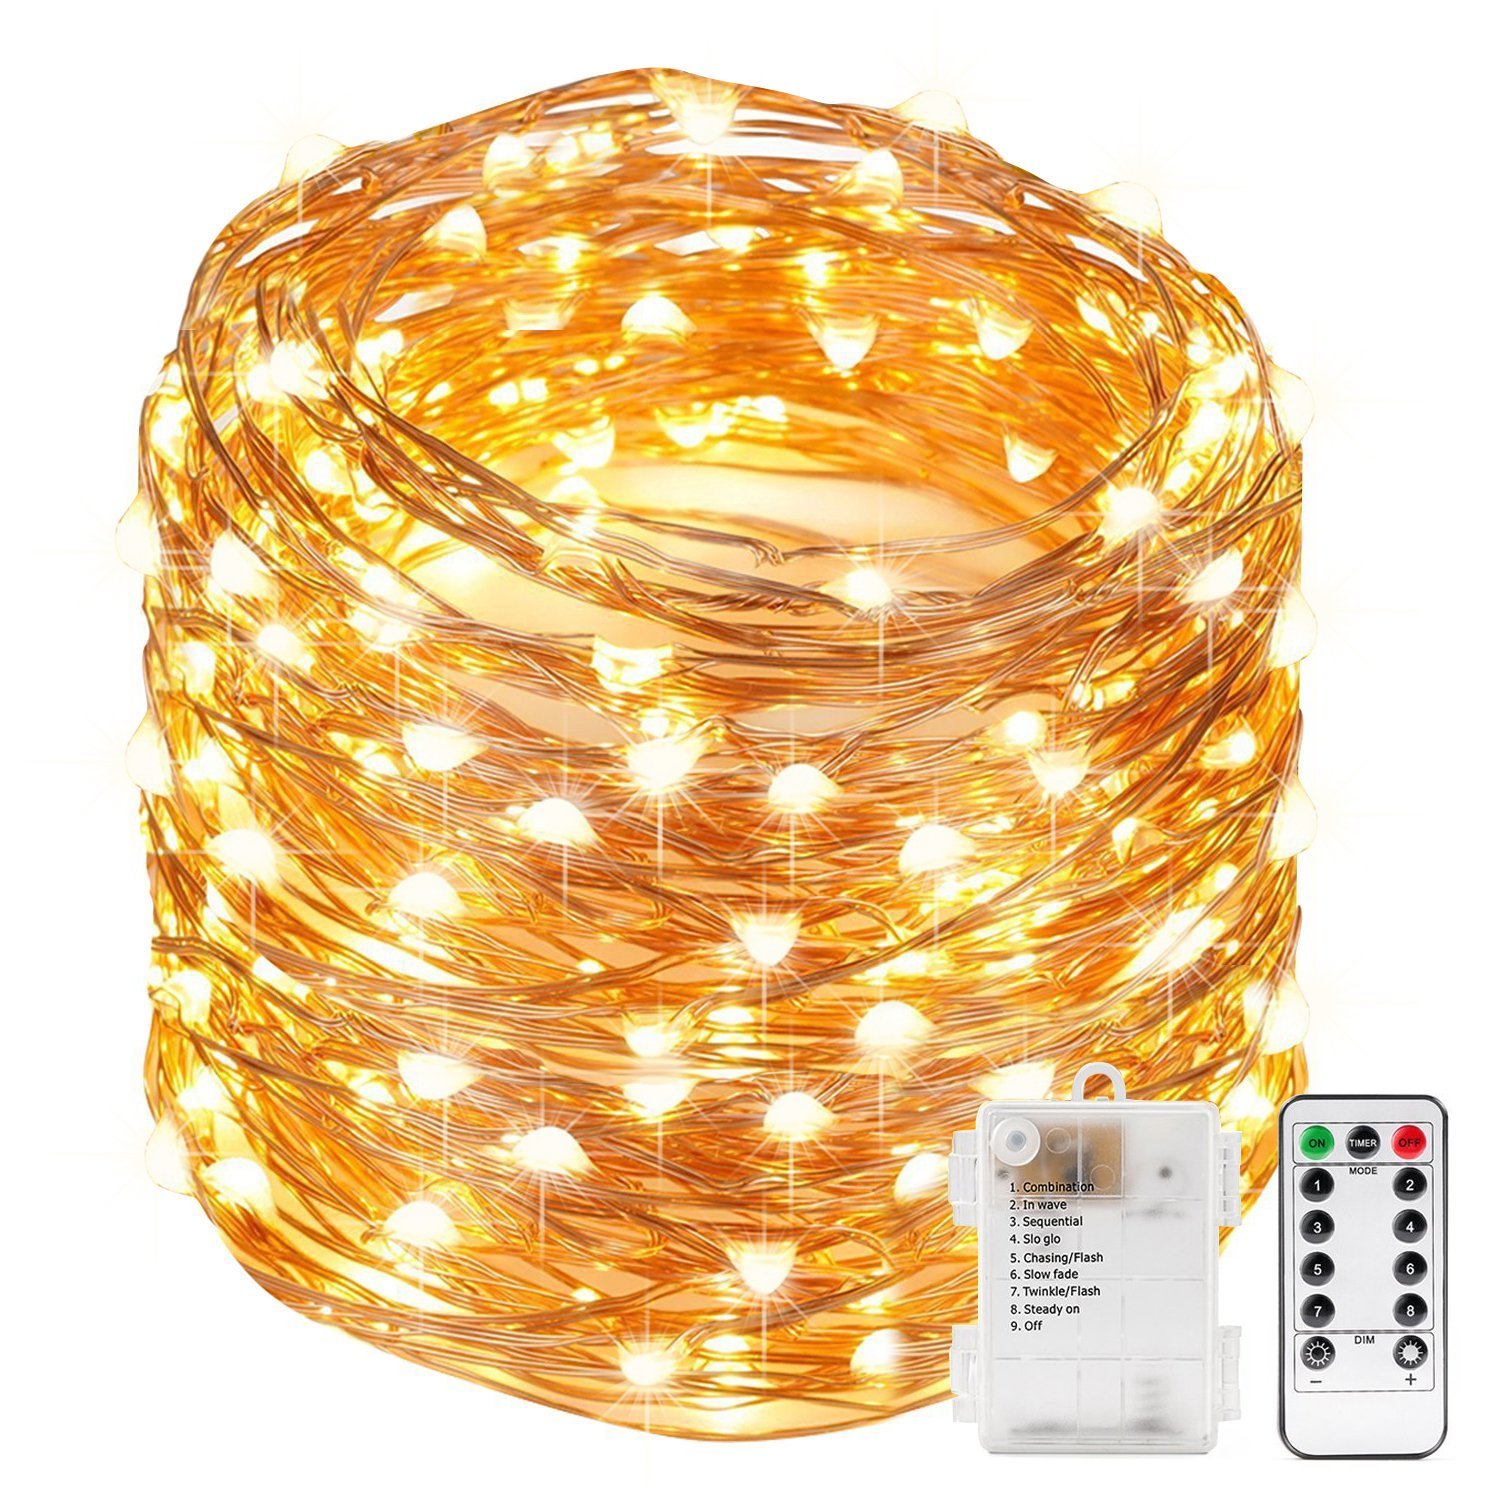 4 Packs 8 Modes AA Battery Powered Seasonal Decor Rope Lights for Holiday 33FT 100LEDs Kohree String Lights LED Copper Wire Fairy Christmas Light with Remote Control Waterproof Wedding